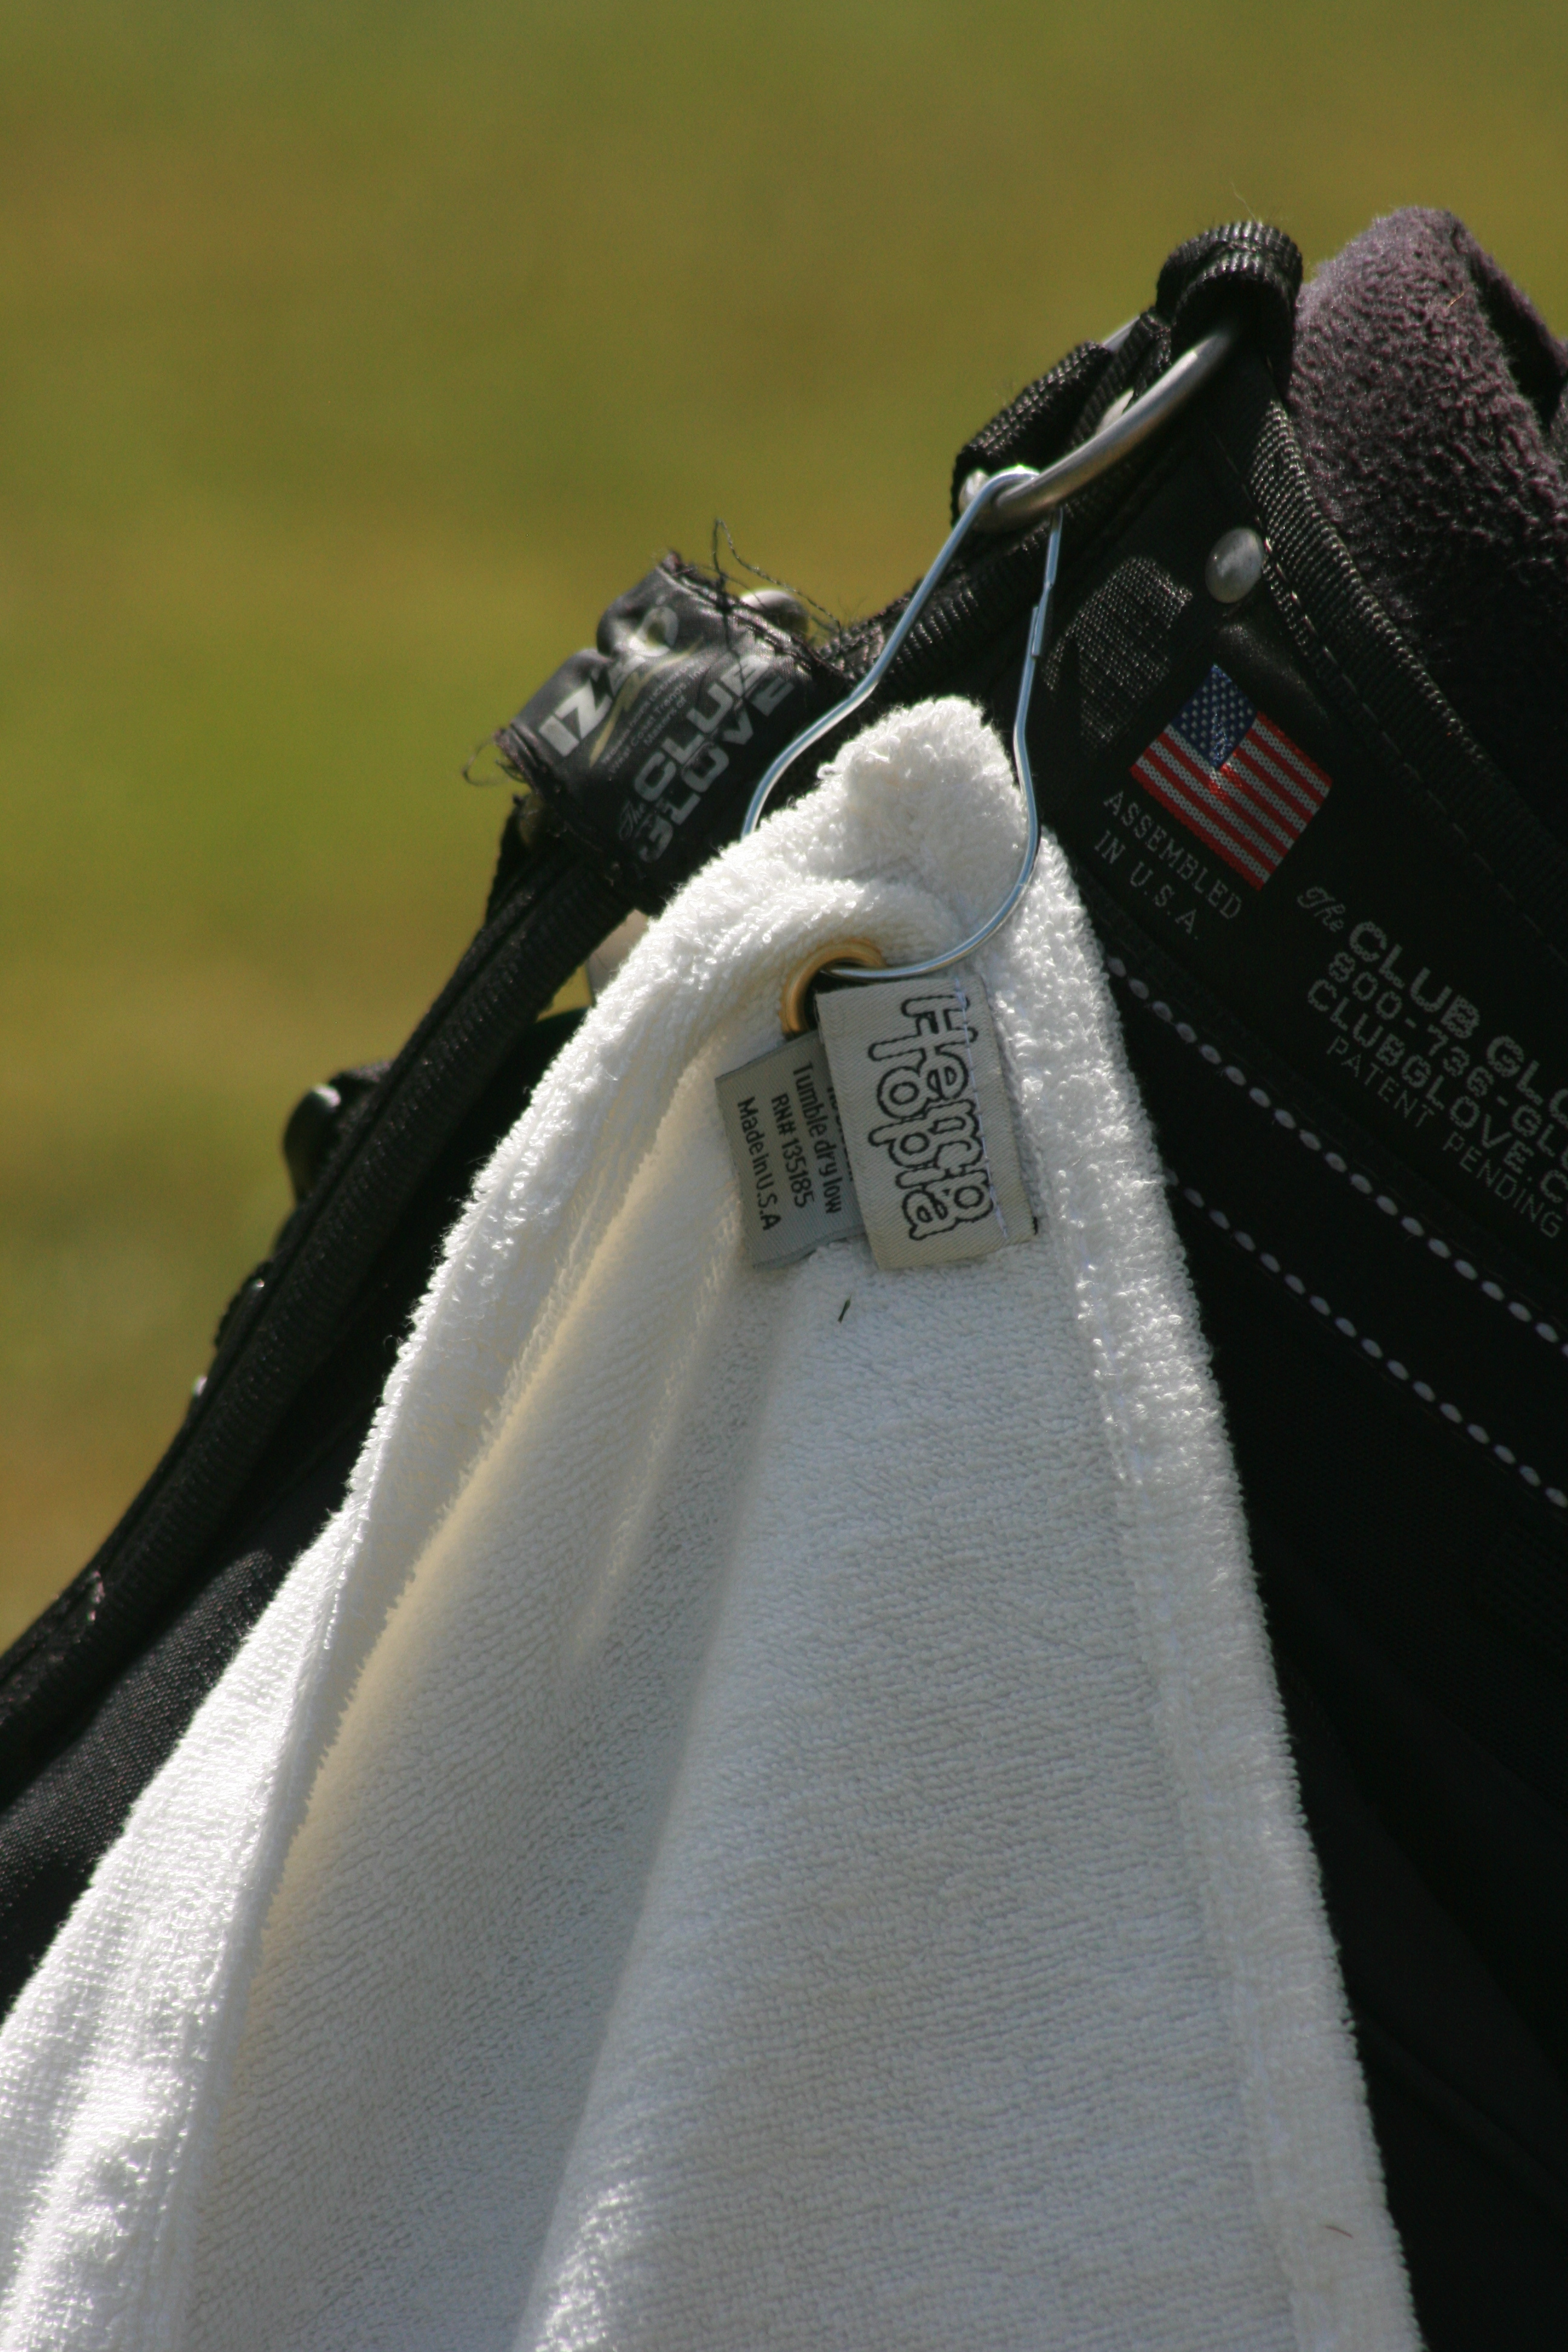 hemp golf towel closeup